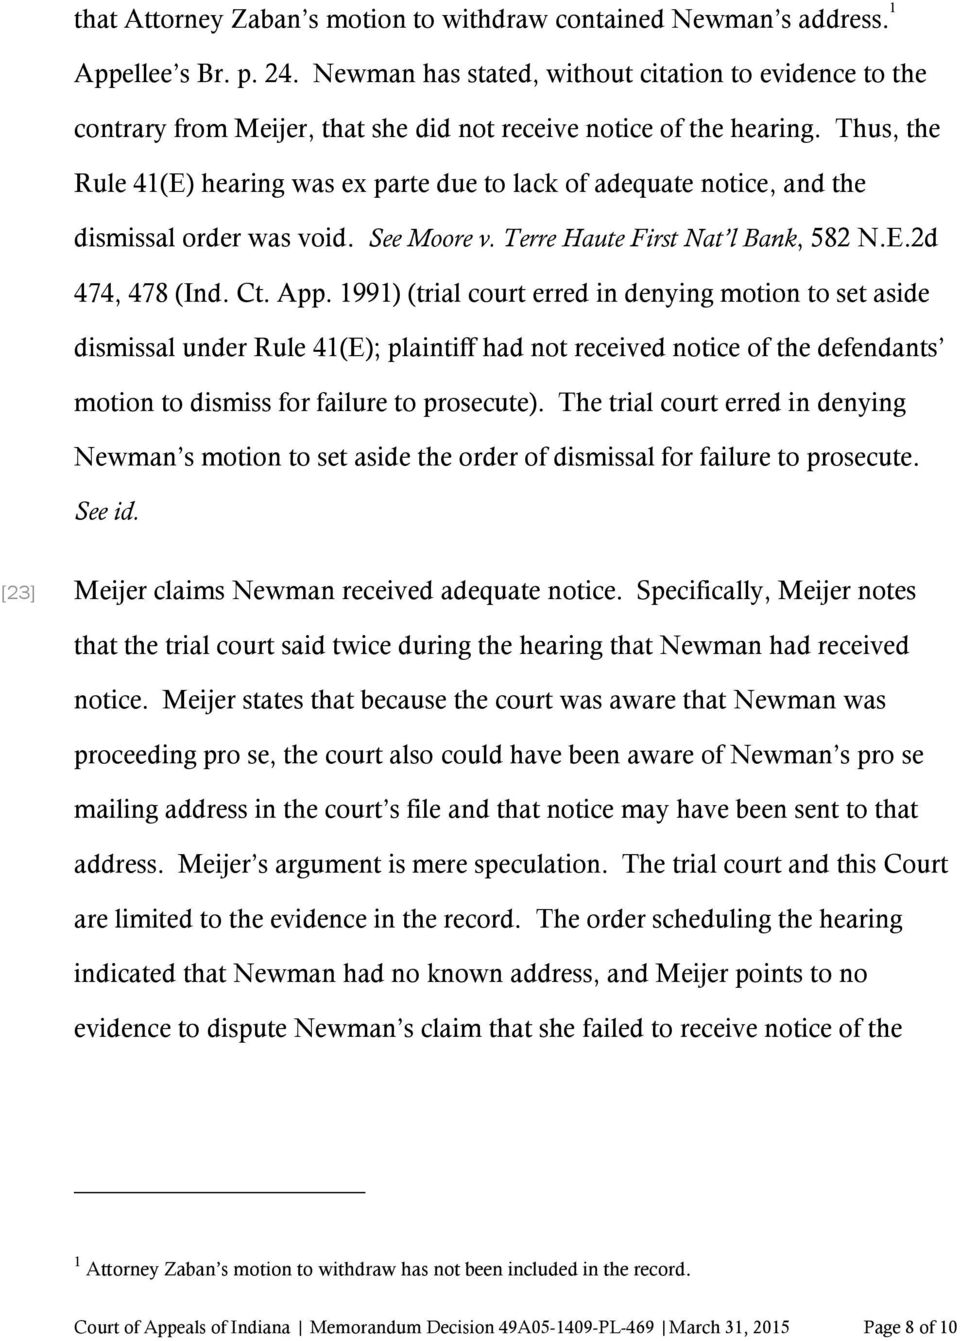 Thus, the Rule 41(E) hearing was ex parte due to lack of adequate notice, and the dismissal order was void. See Moore v. Terre Haute First Nat l Bank, 582 N.E.2d 474, 478 (Ind. Ct. App.